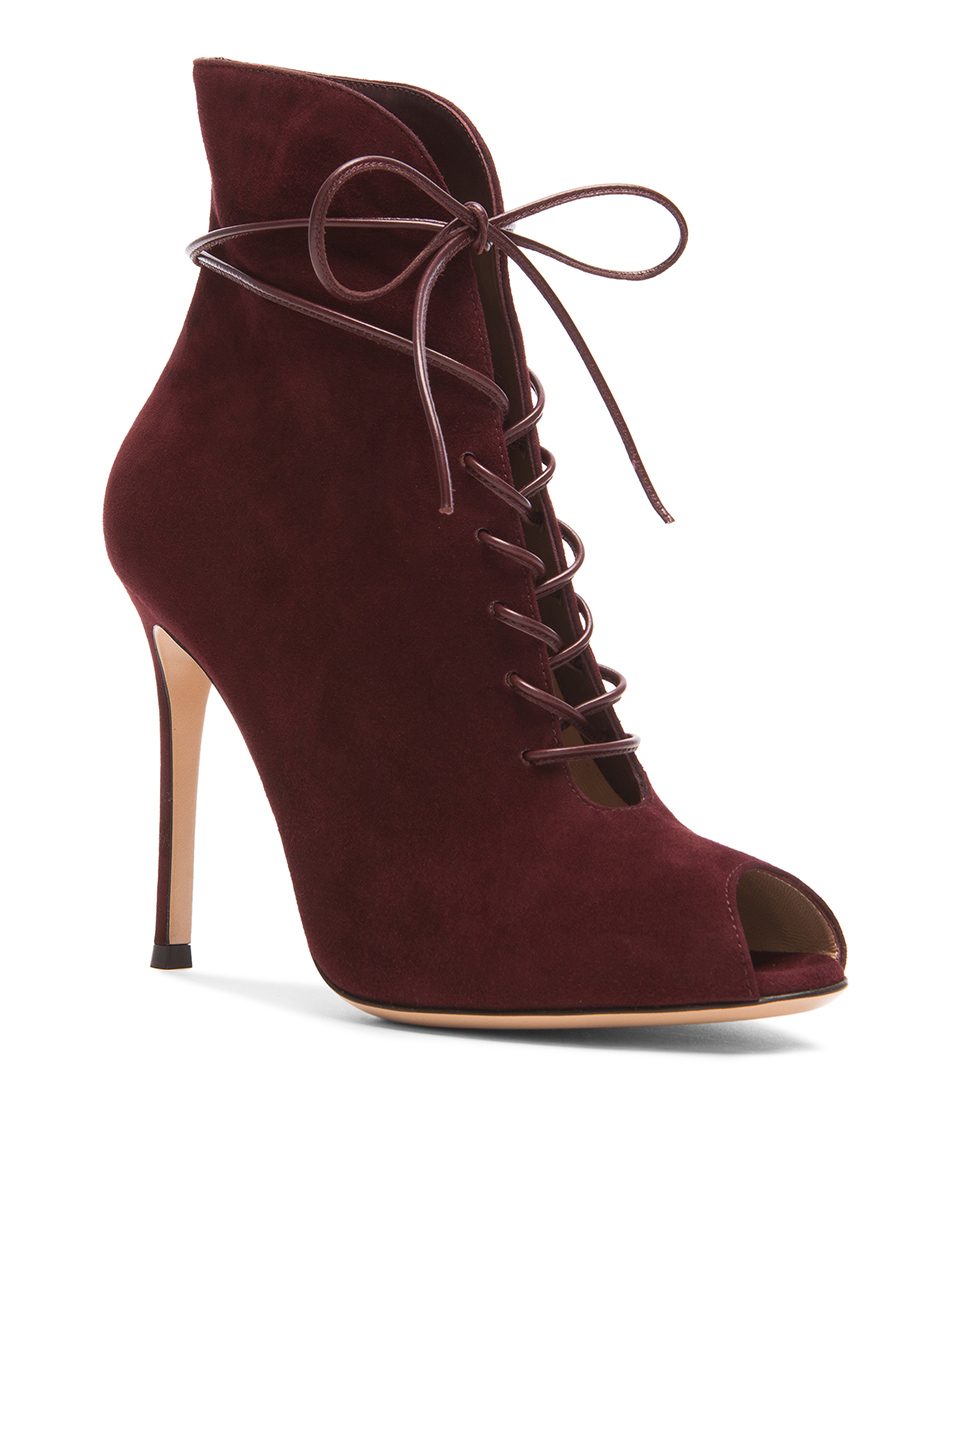 sale fake clearance store sale online Sergio Rossi open toe lace-up boots best seller cheap price outlet cheap quality cost online vjGgiNwS